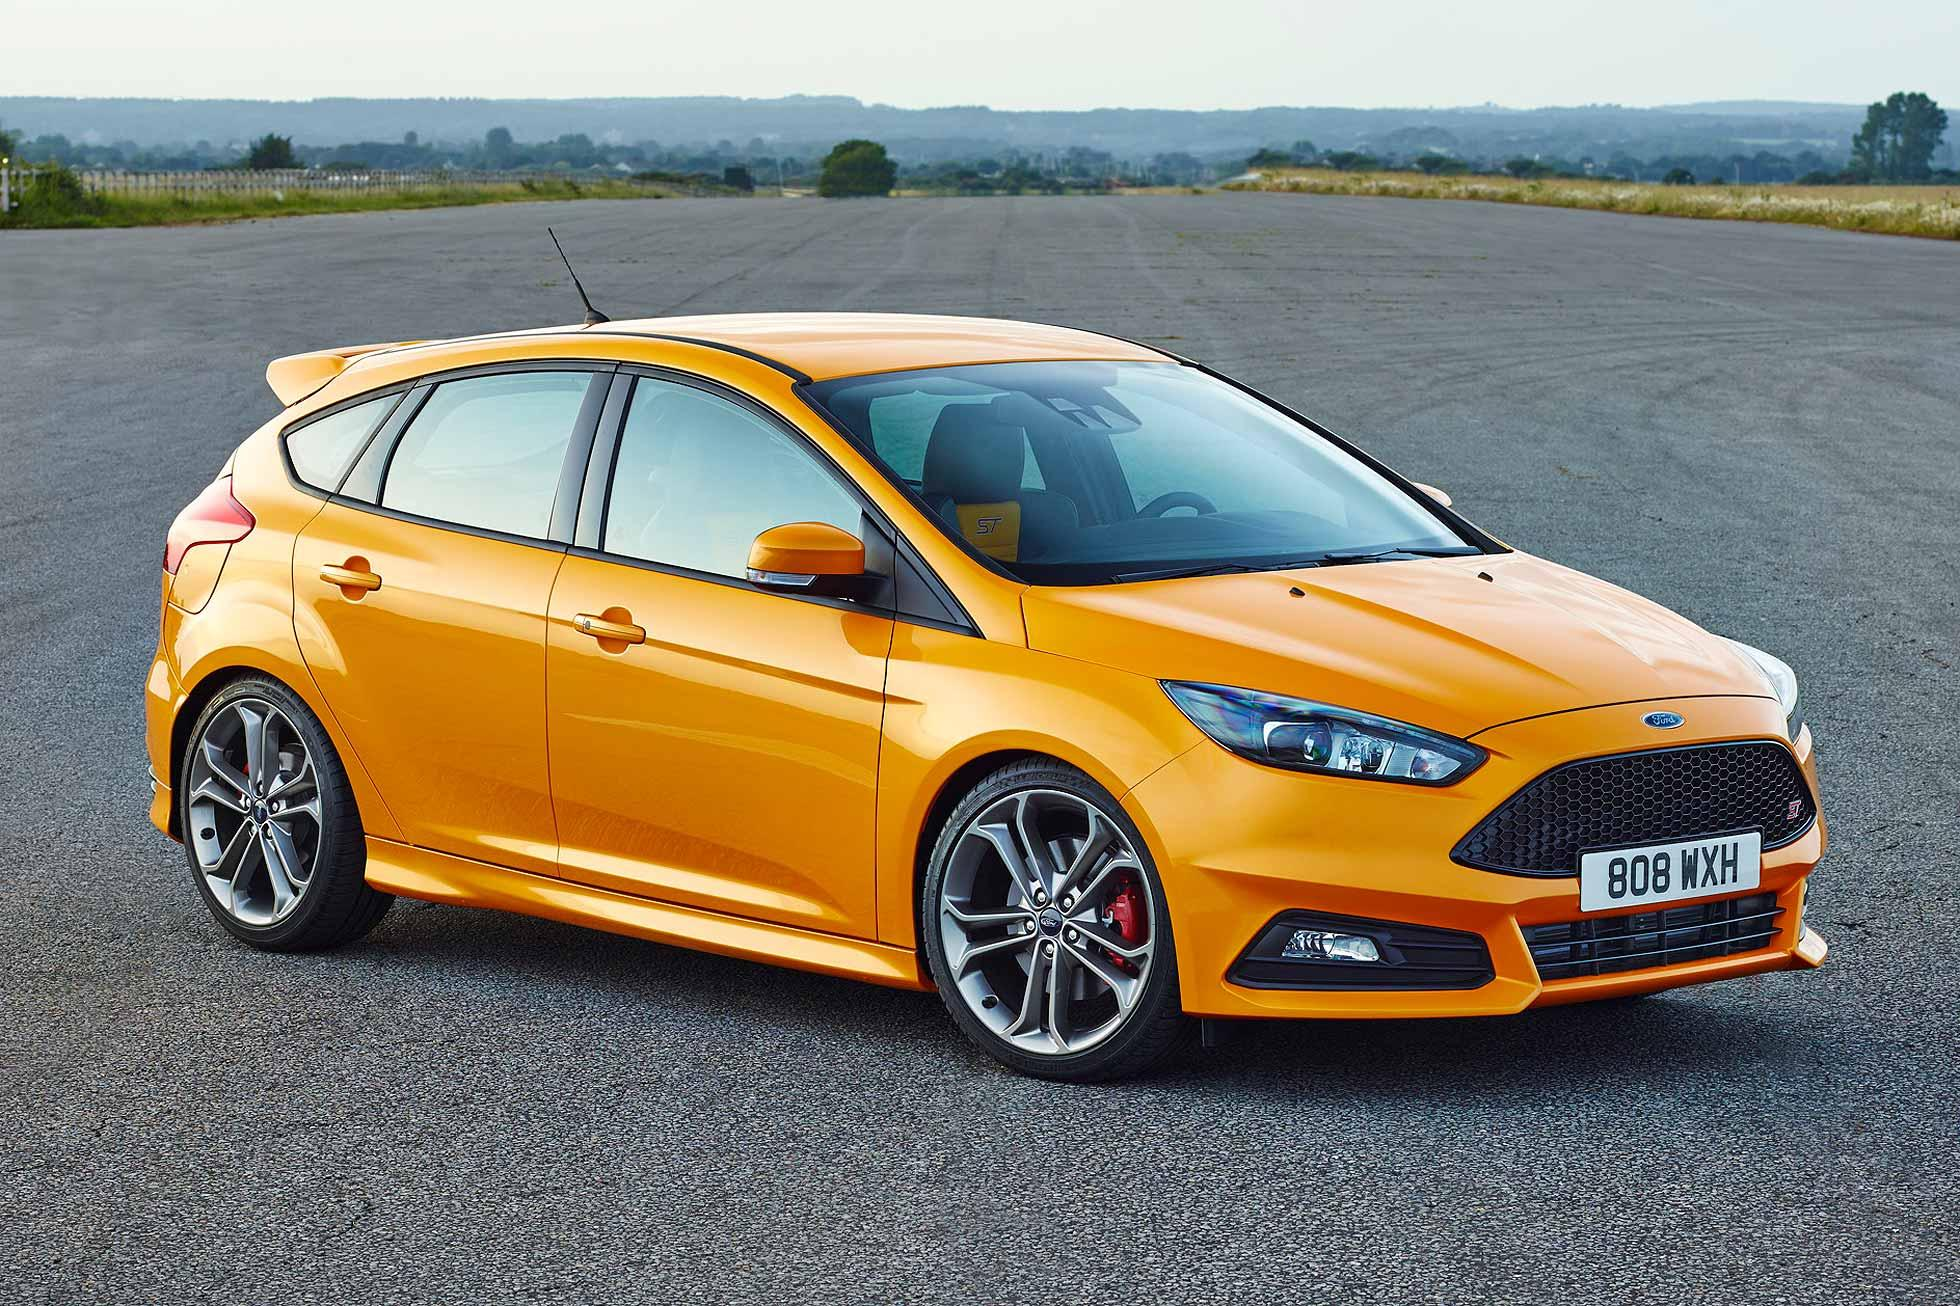 Ford Focus Recall 2019: Faulty Purge Valve Could Lead To